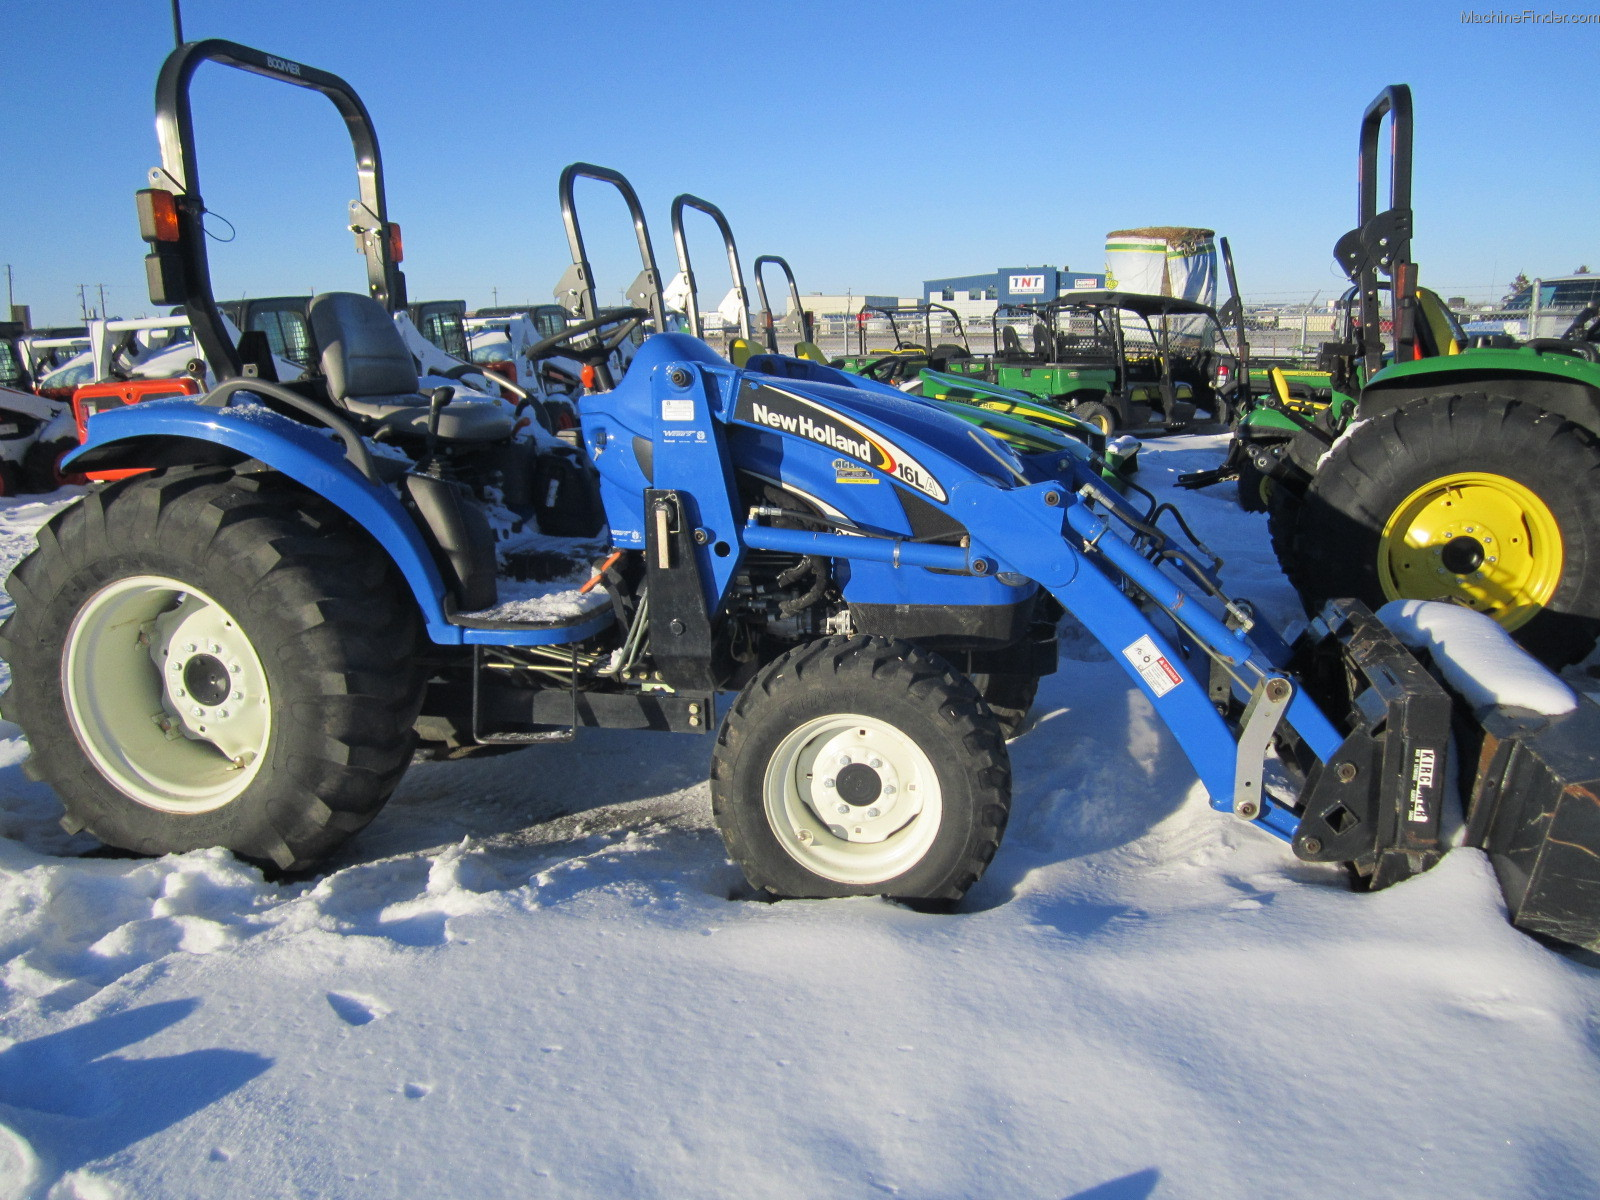 New Holland Compact Utility Tractor : Ford new holland compact utility tractors